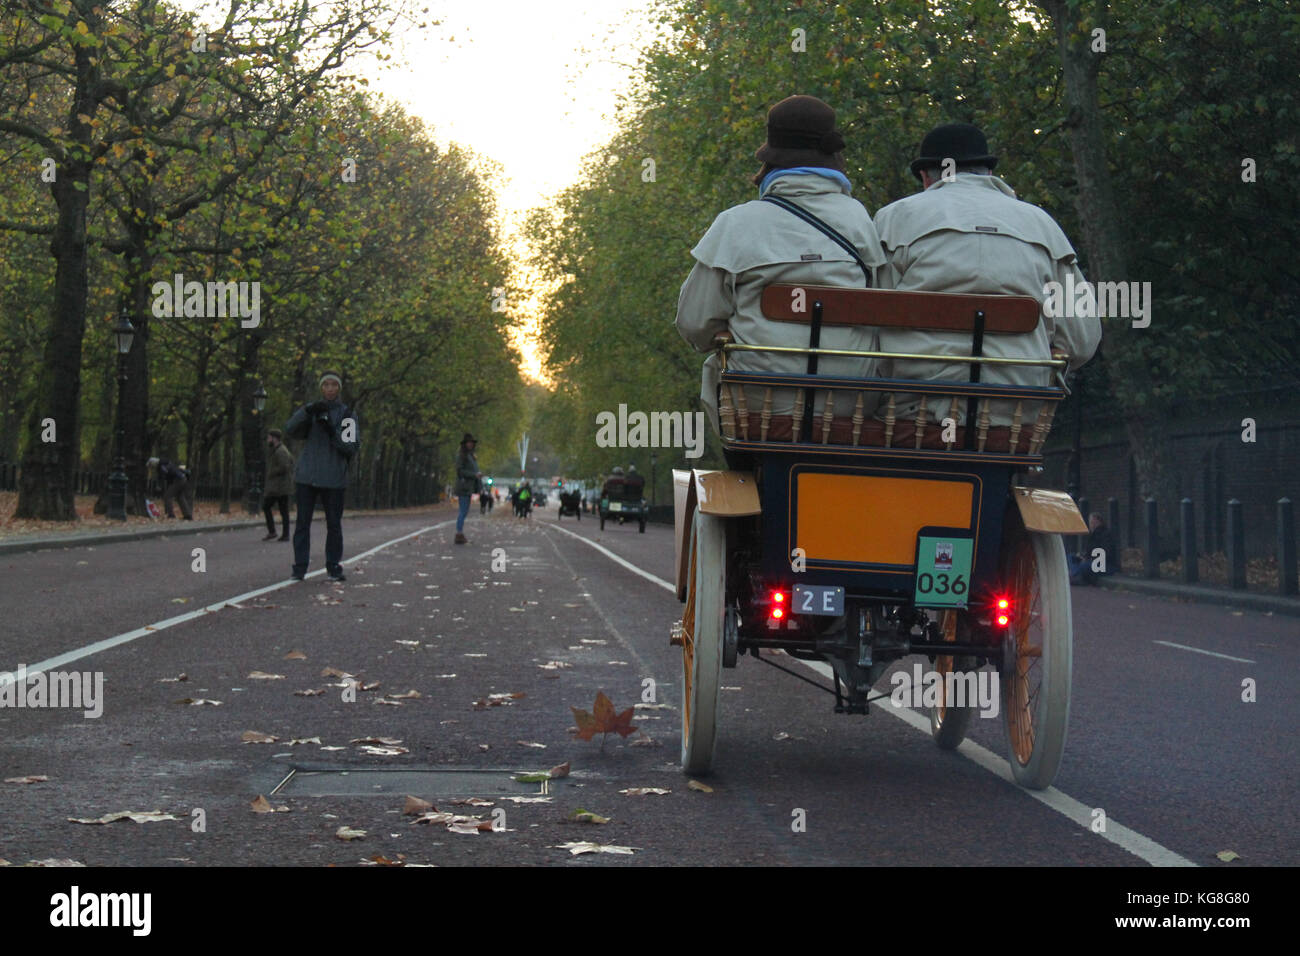 London, UK. 05th Nov, 2017. Hyde Park Corner, London, UK - November 5: A couple speed their vintage car on Constitutional - Stock Image